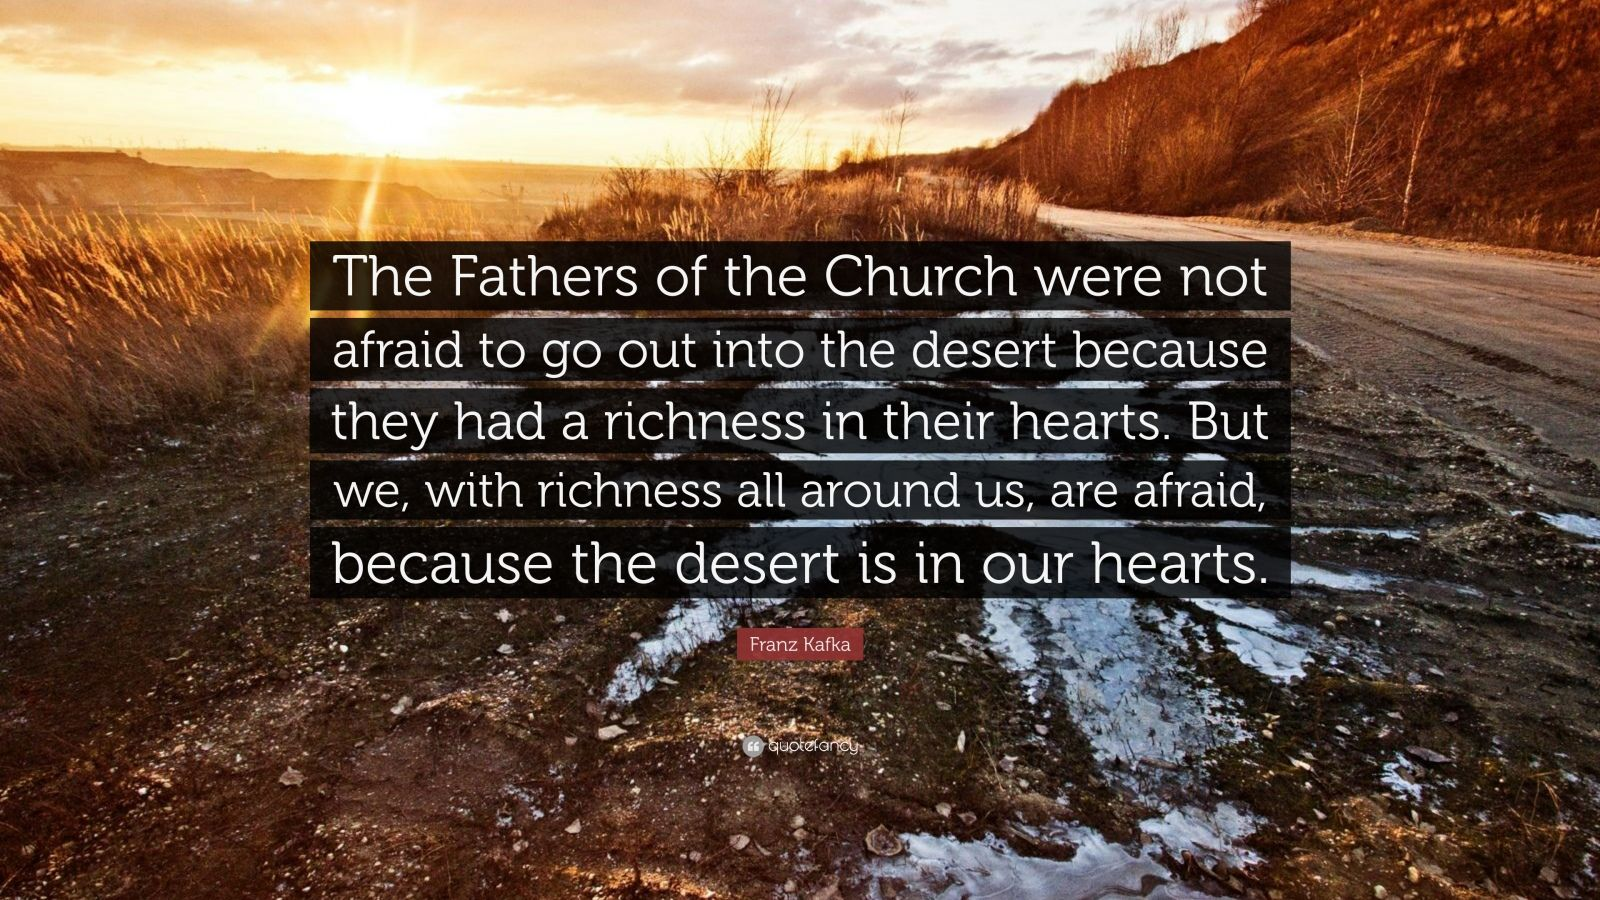 "Franz Kafka Quote: ""The Fathers of the Church were not afraid to go out into the desert because they had a richness in their hearts. But we, with richness all around us, are afraid, because the desert is in our hearts."""